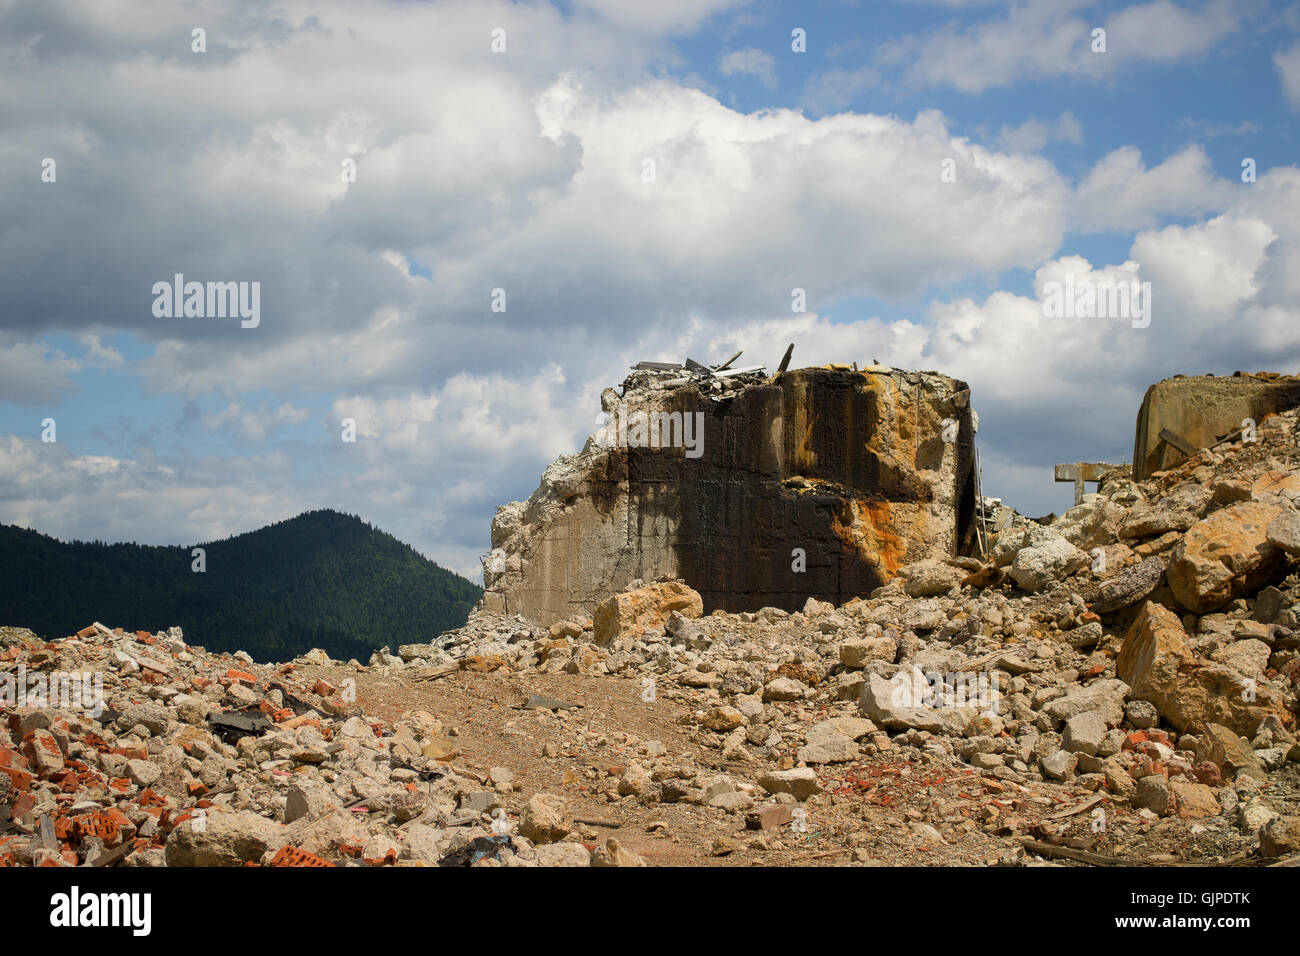 Abandoned mine site in the mountains of Romania - Stock Image